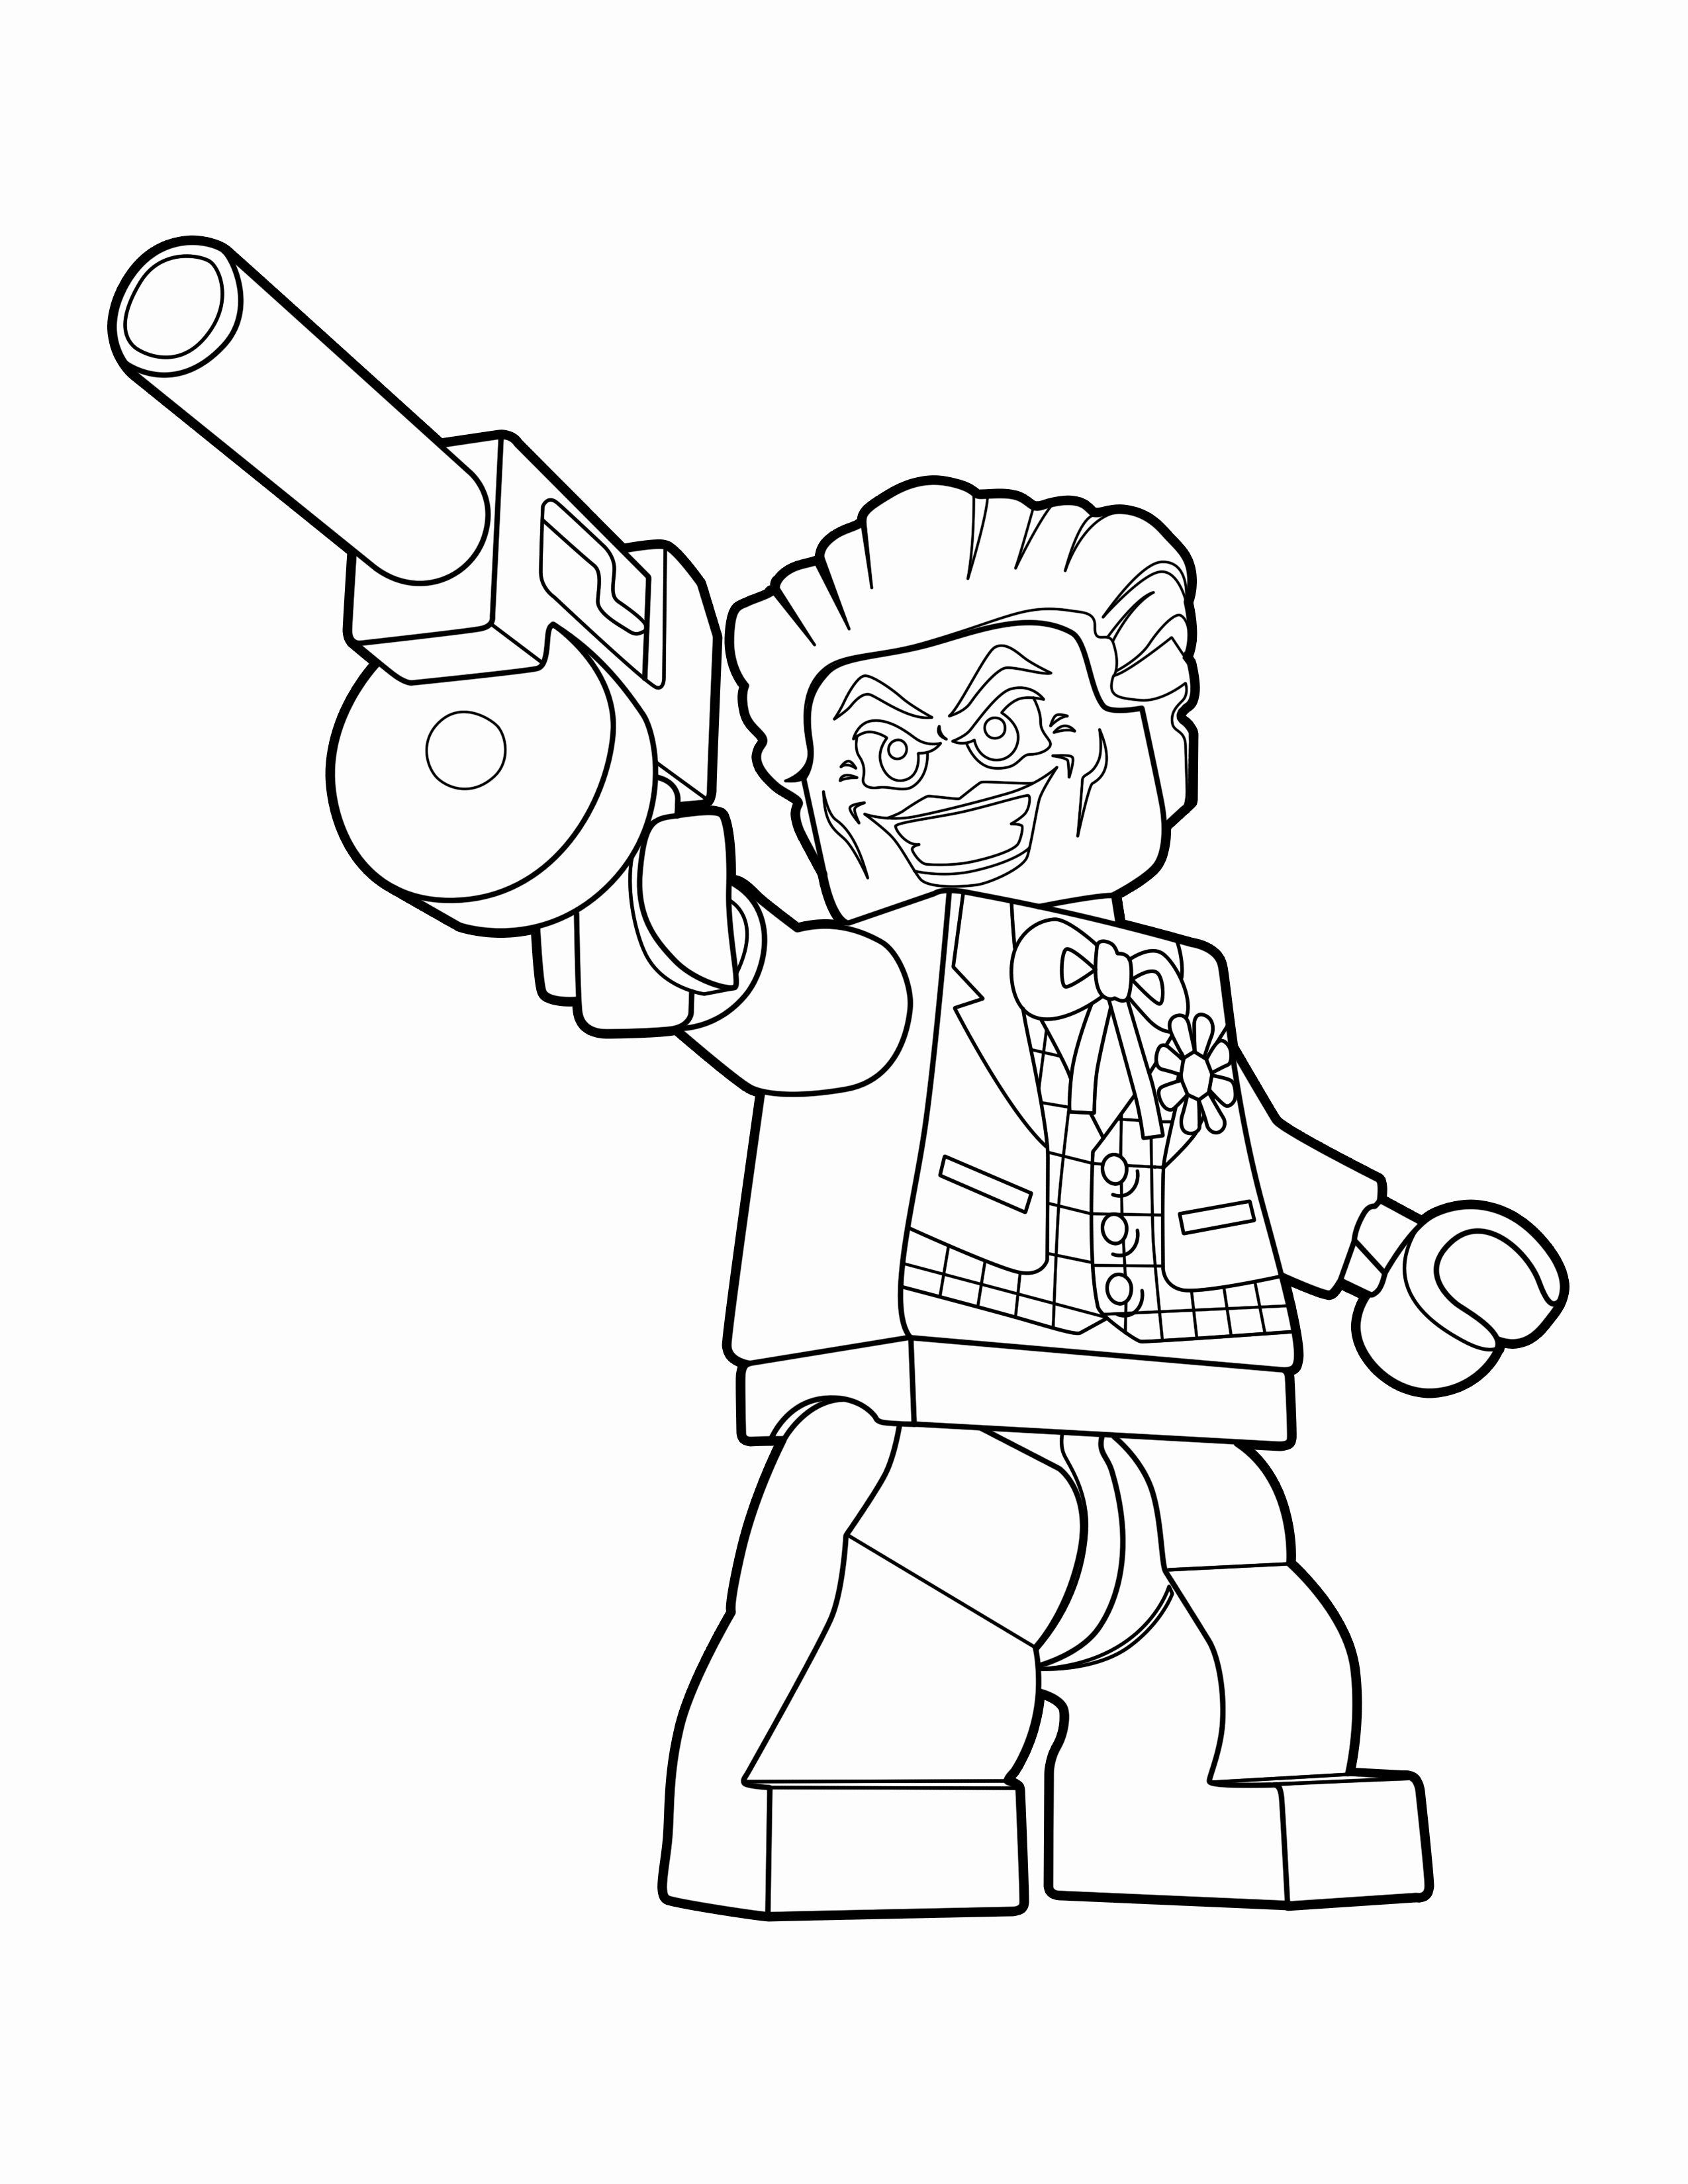 28 Lego Joker Coloring Page In 2020 Batman Coloring Pages Coloring Pages Lego Dc